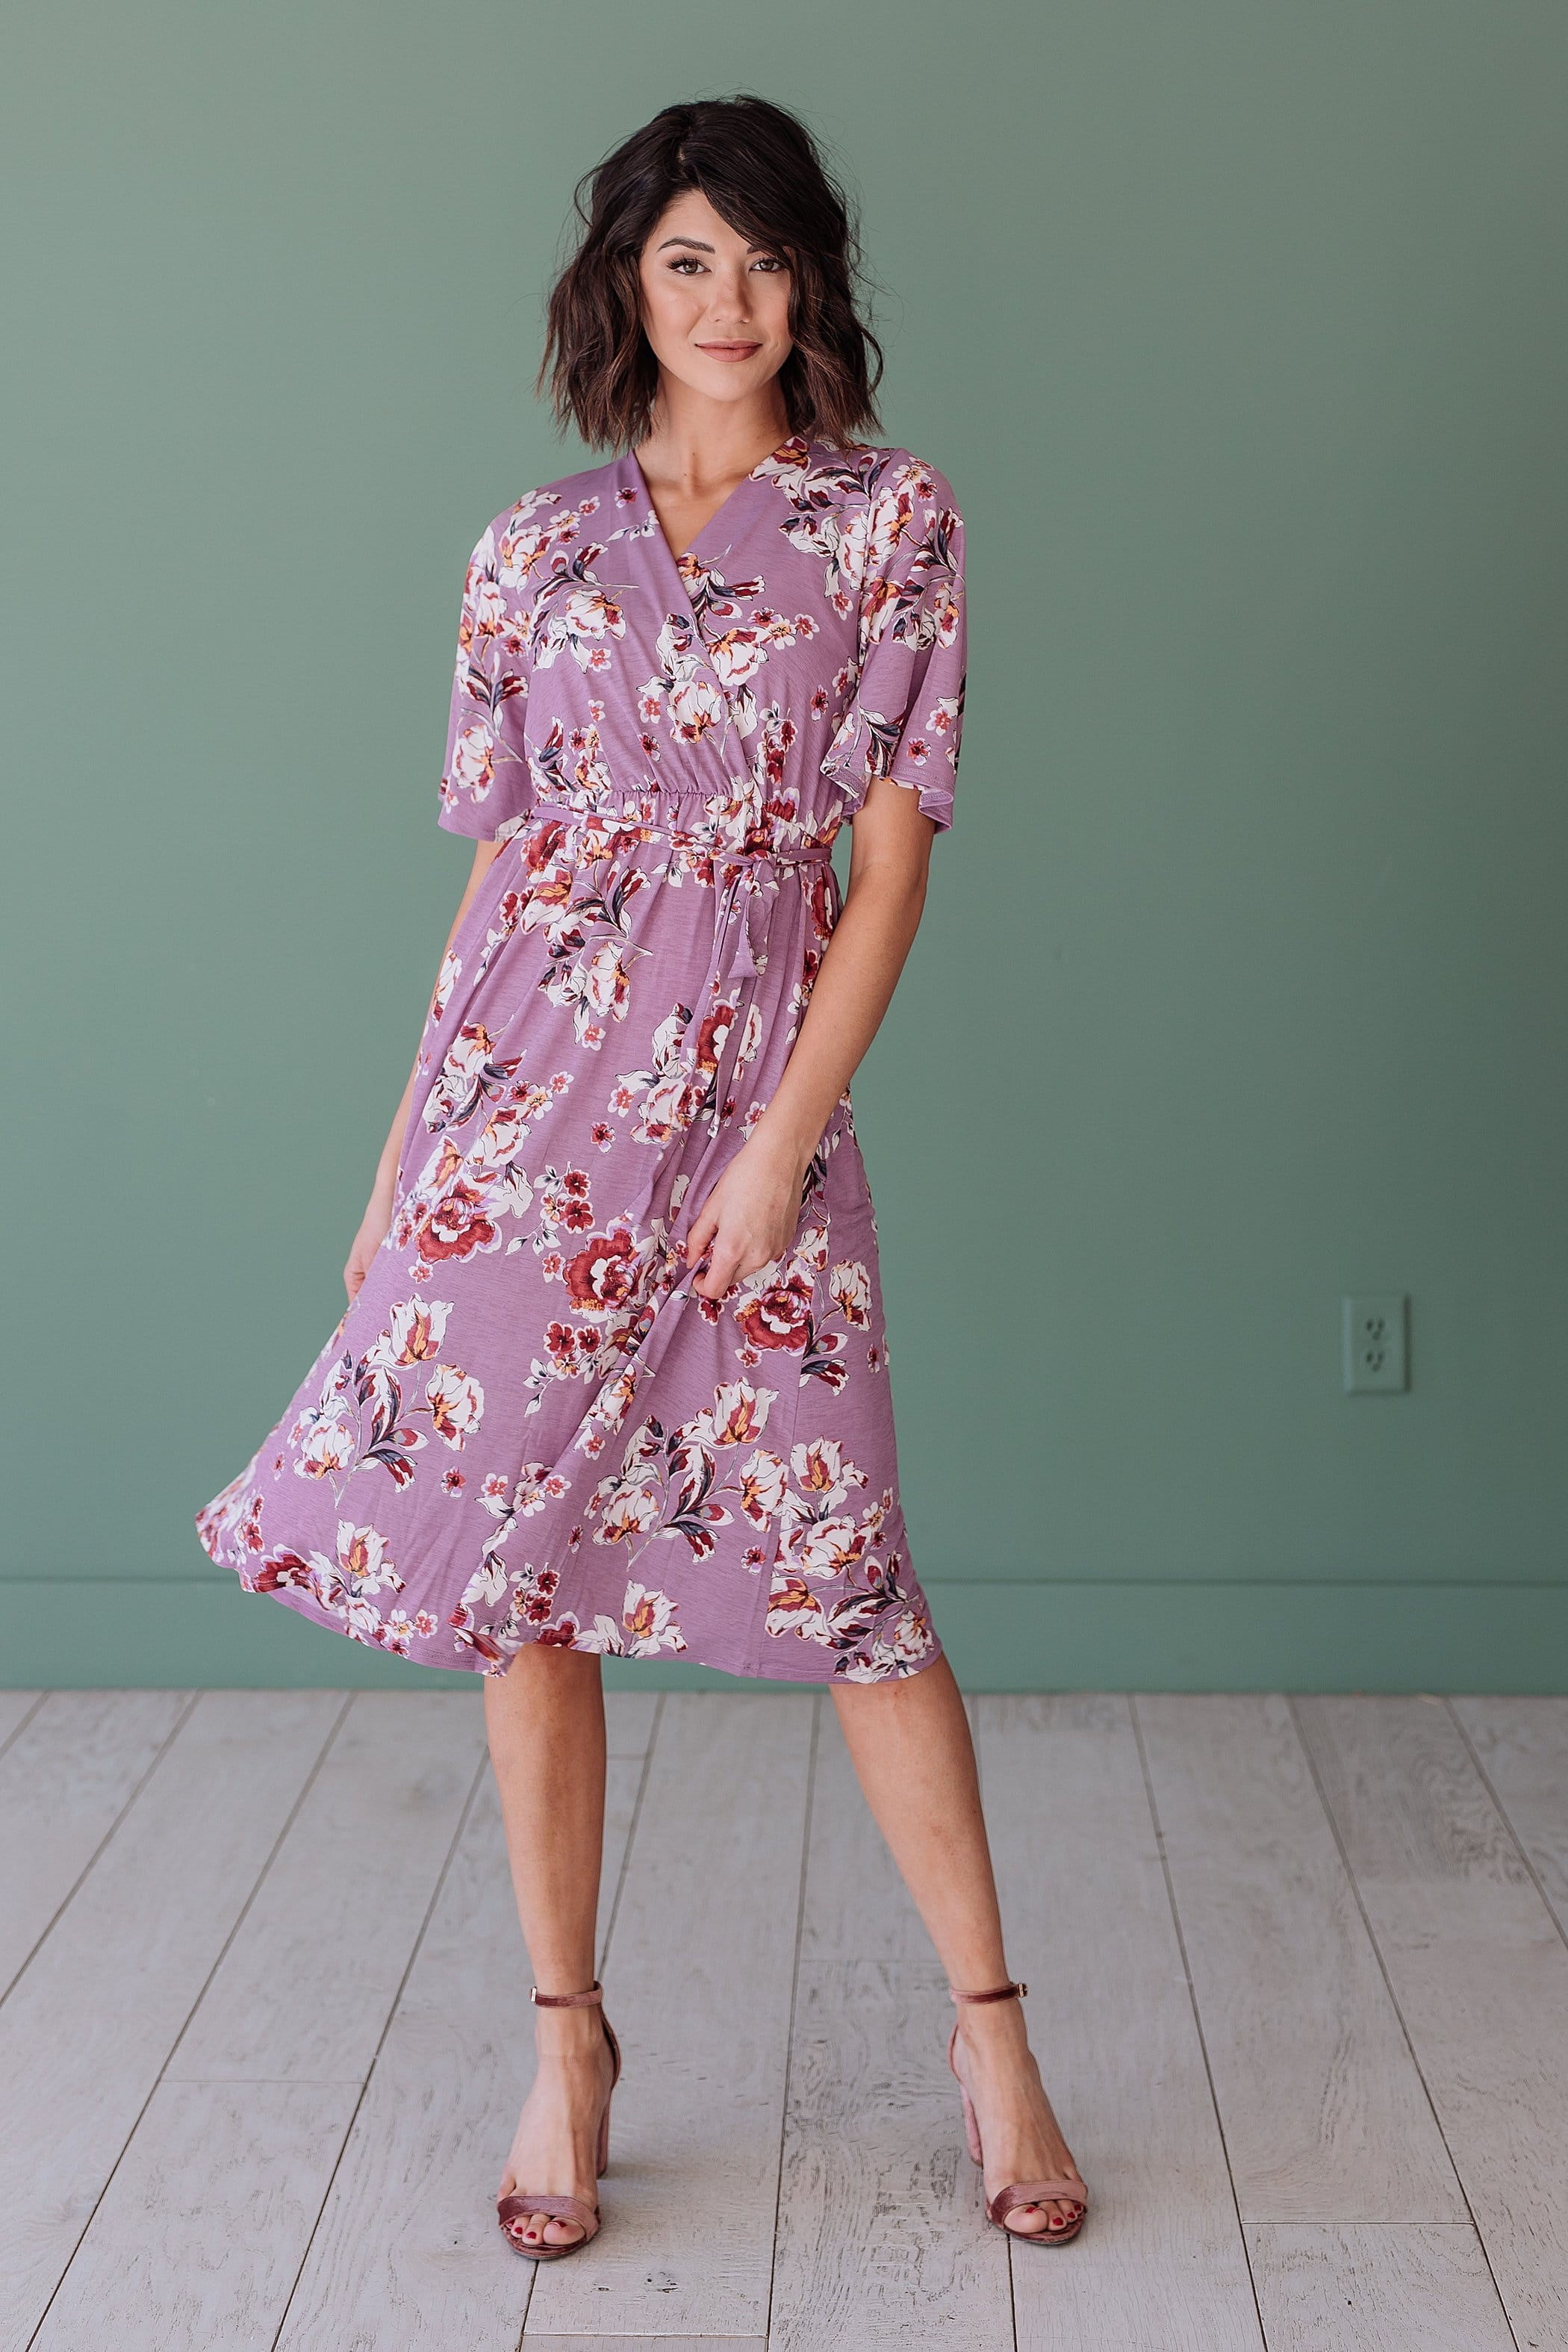 The Landry Floral Wrap Midi Dress in Purple